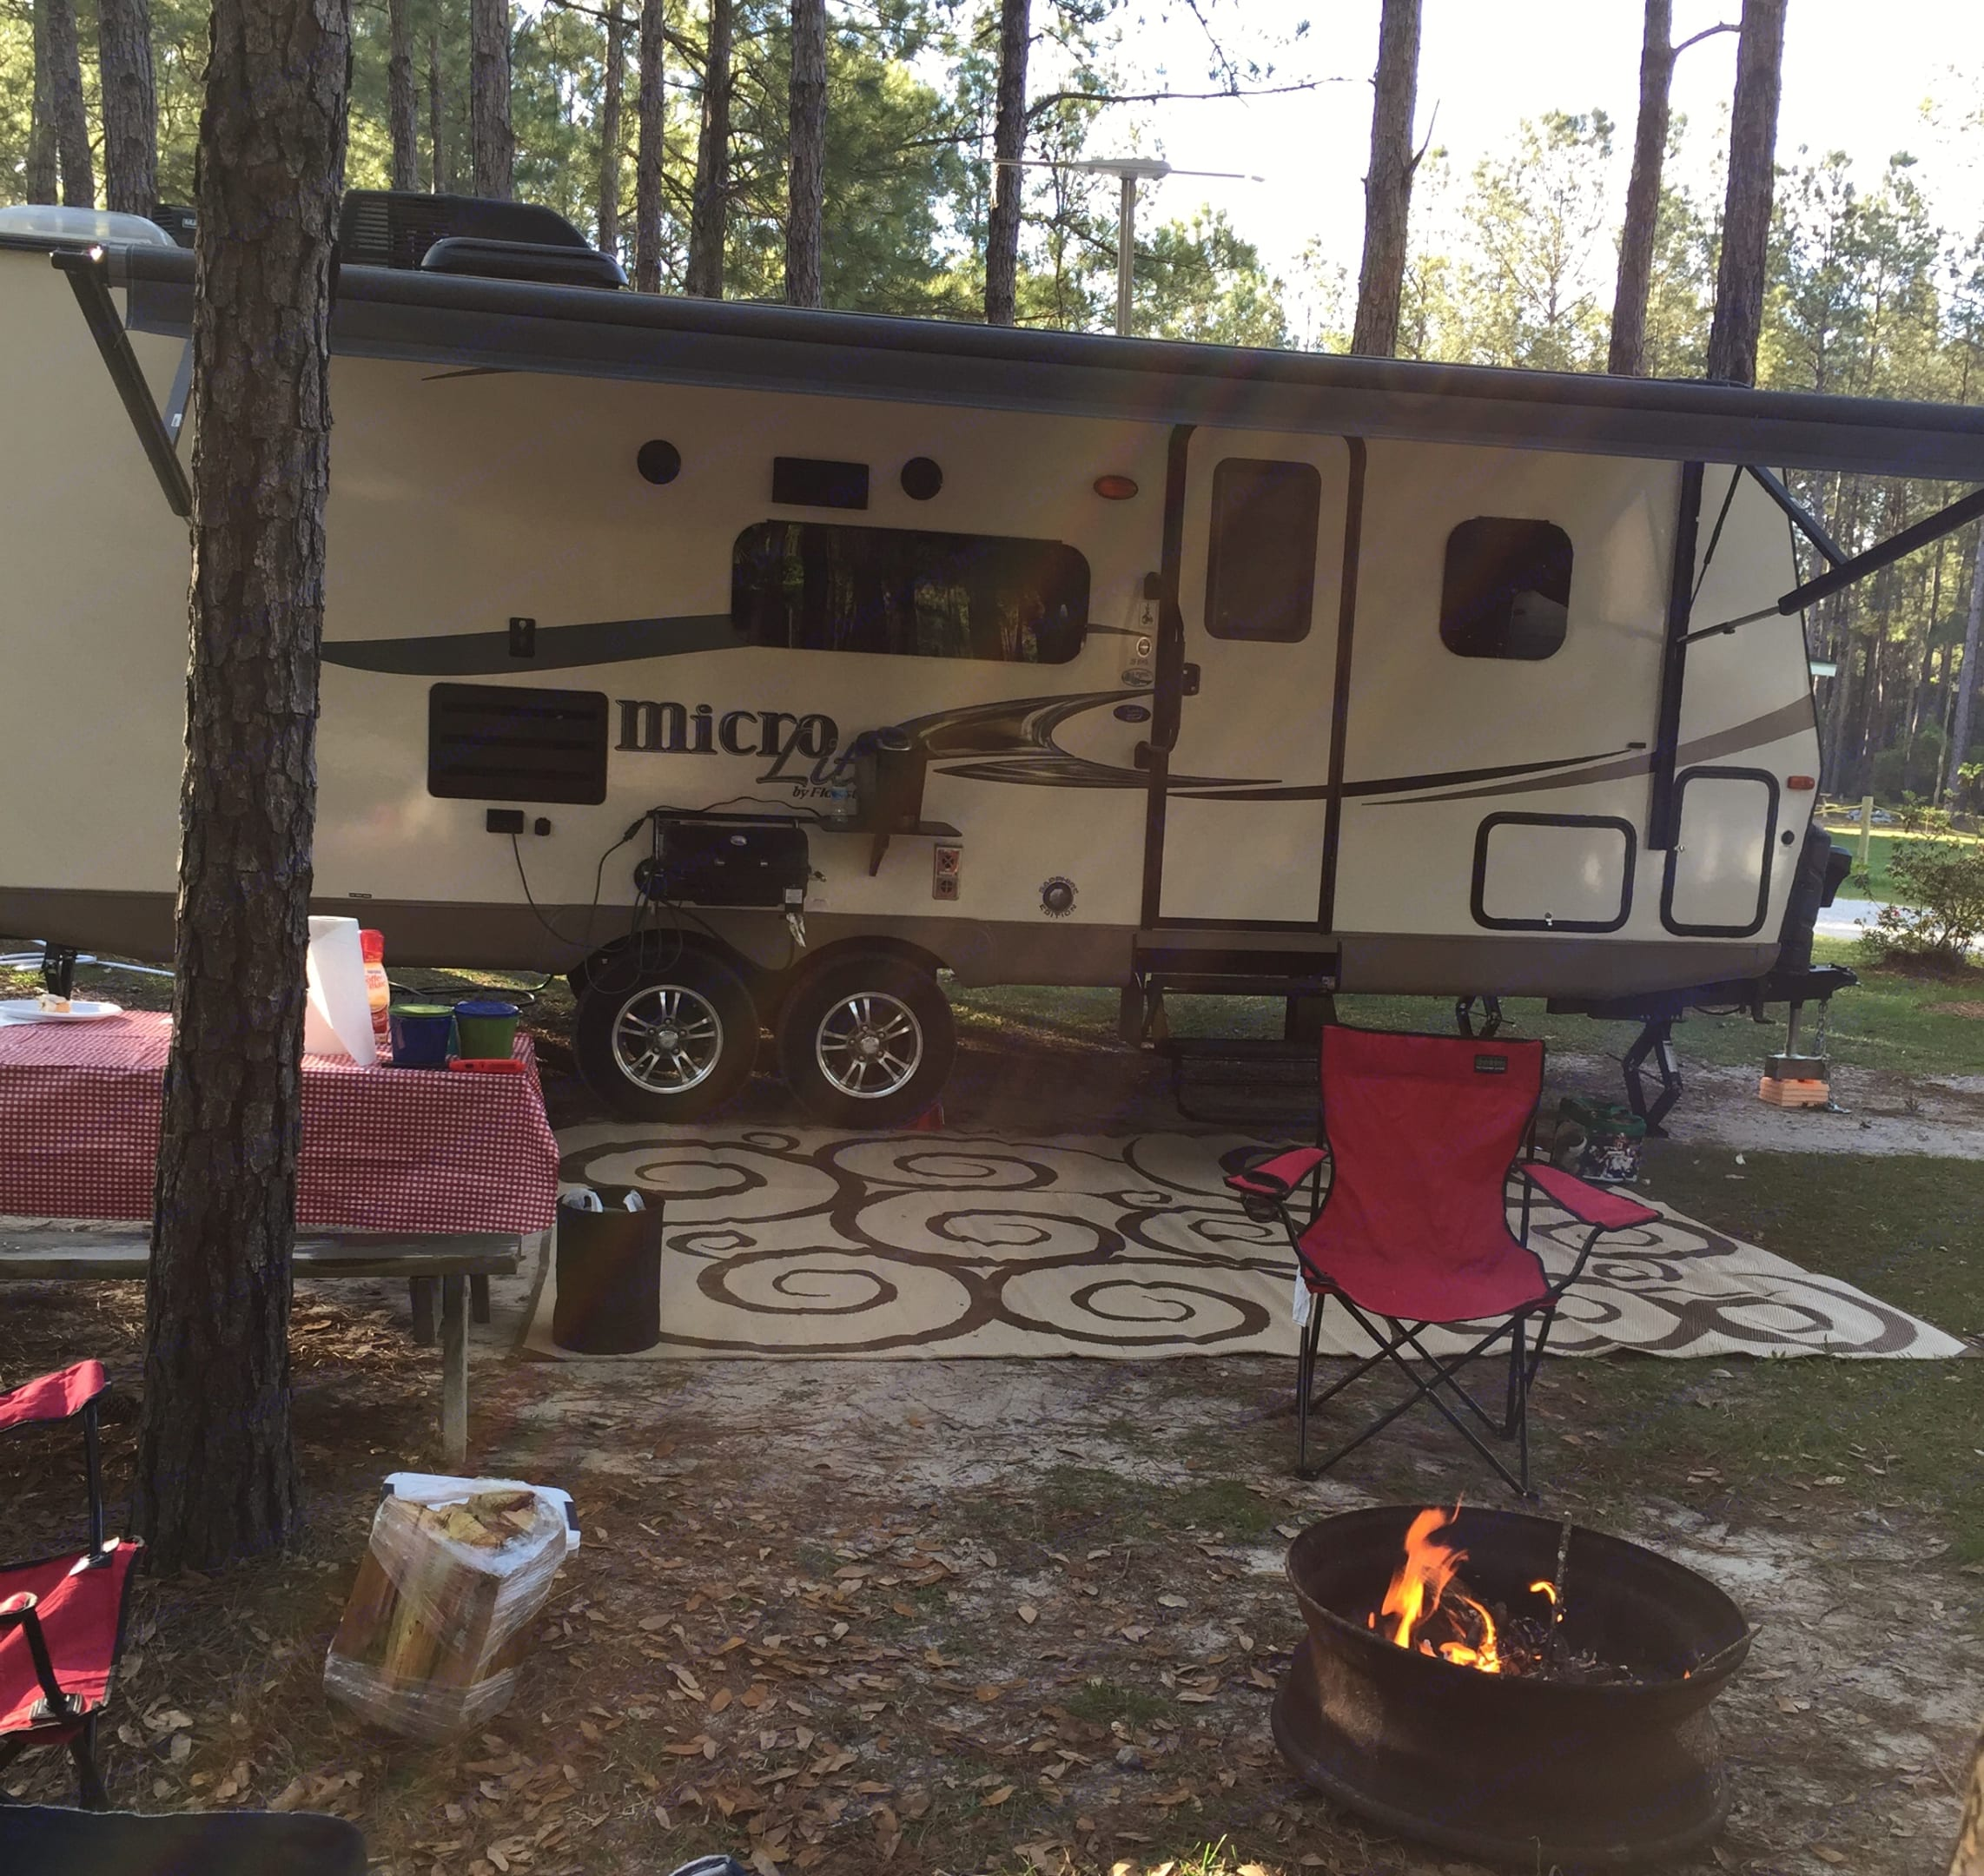 camping at Jellystone Park in Elberta, Alabama. Forest River Micro-Lite 2016